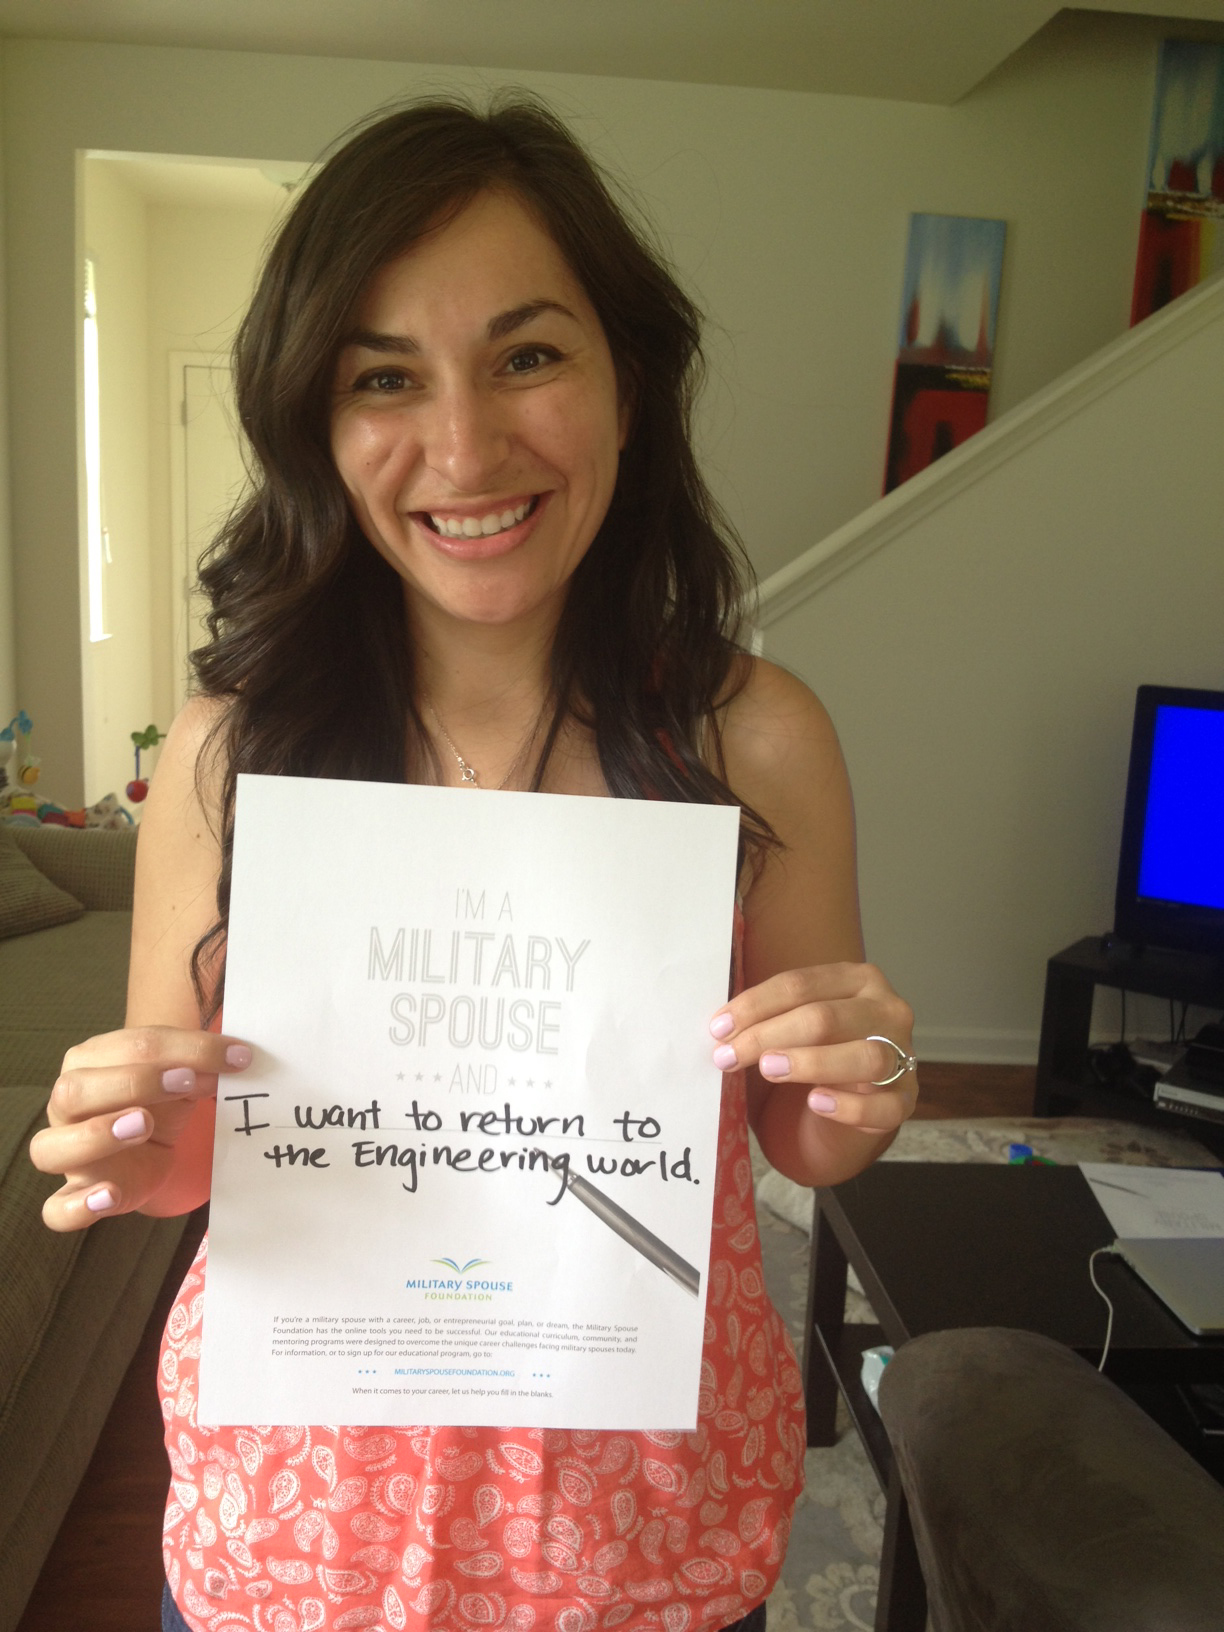 I'm a military spouse and ... I want to return to the engineering world.